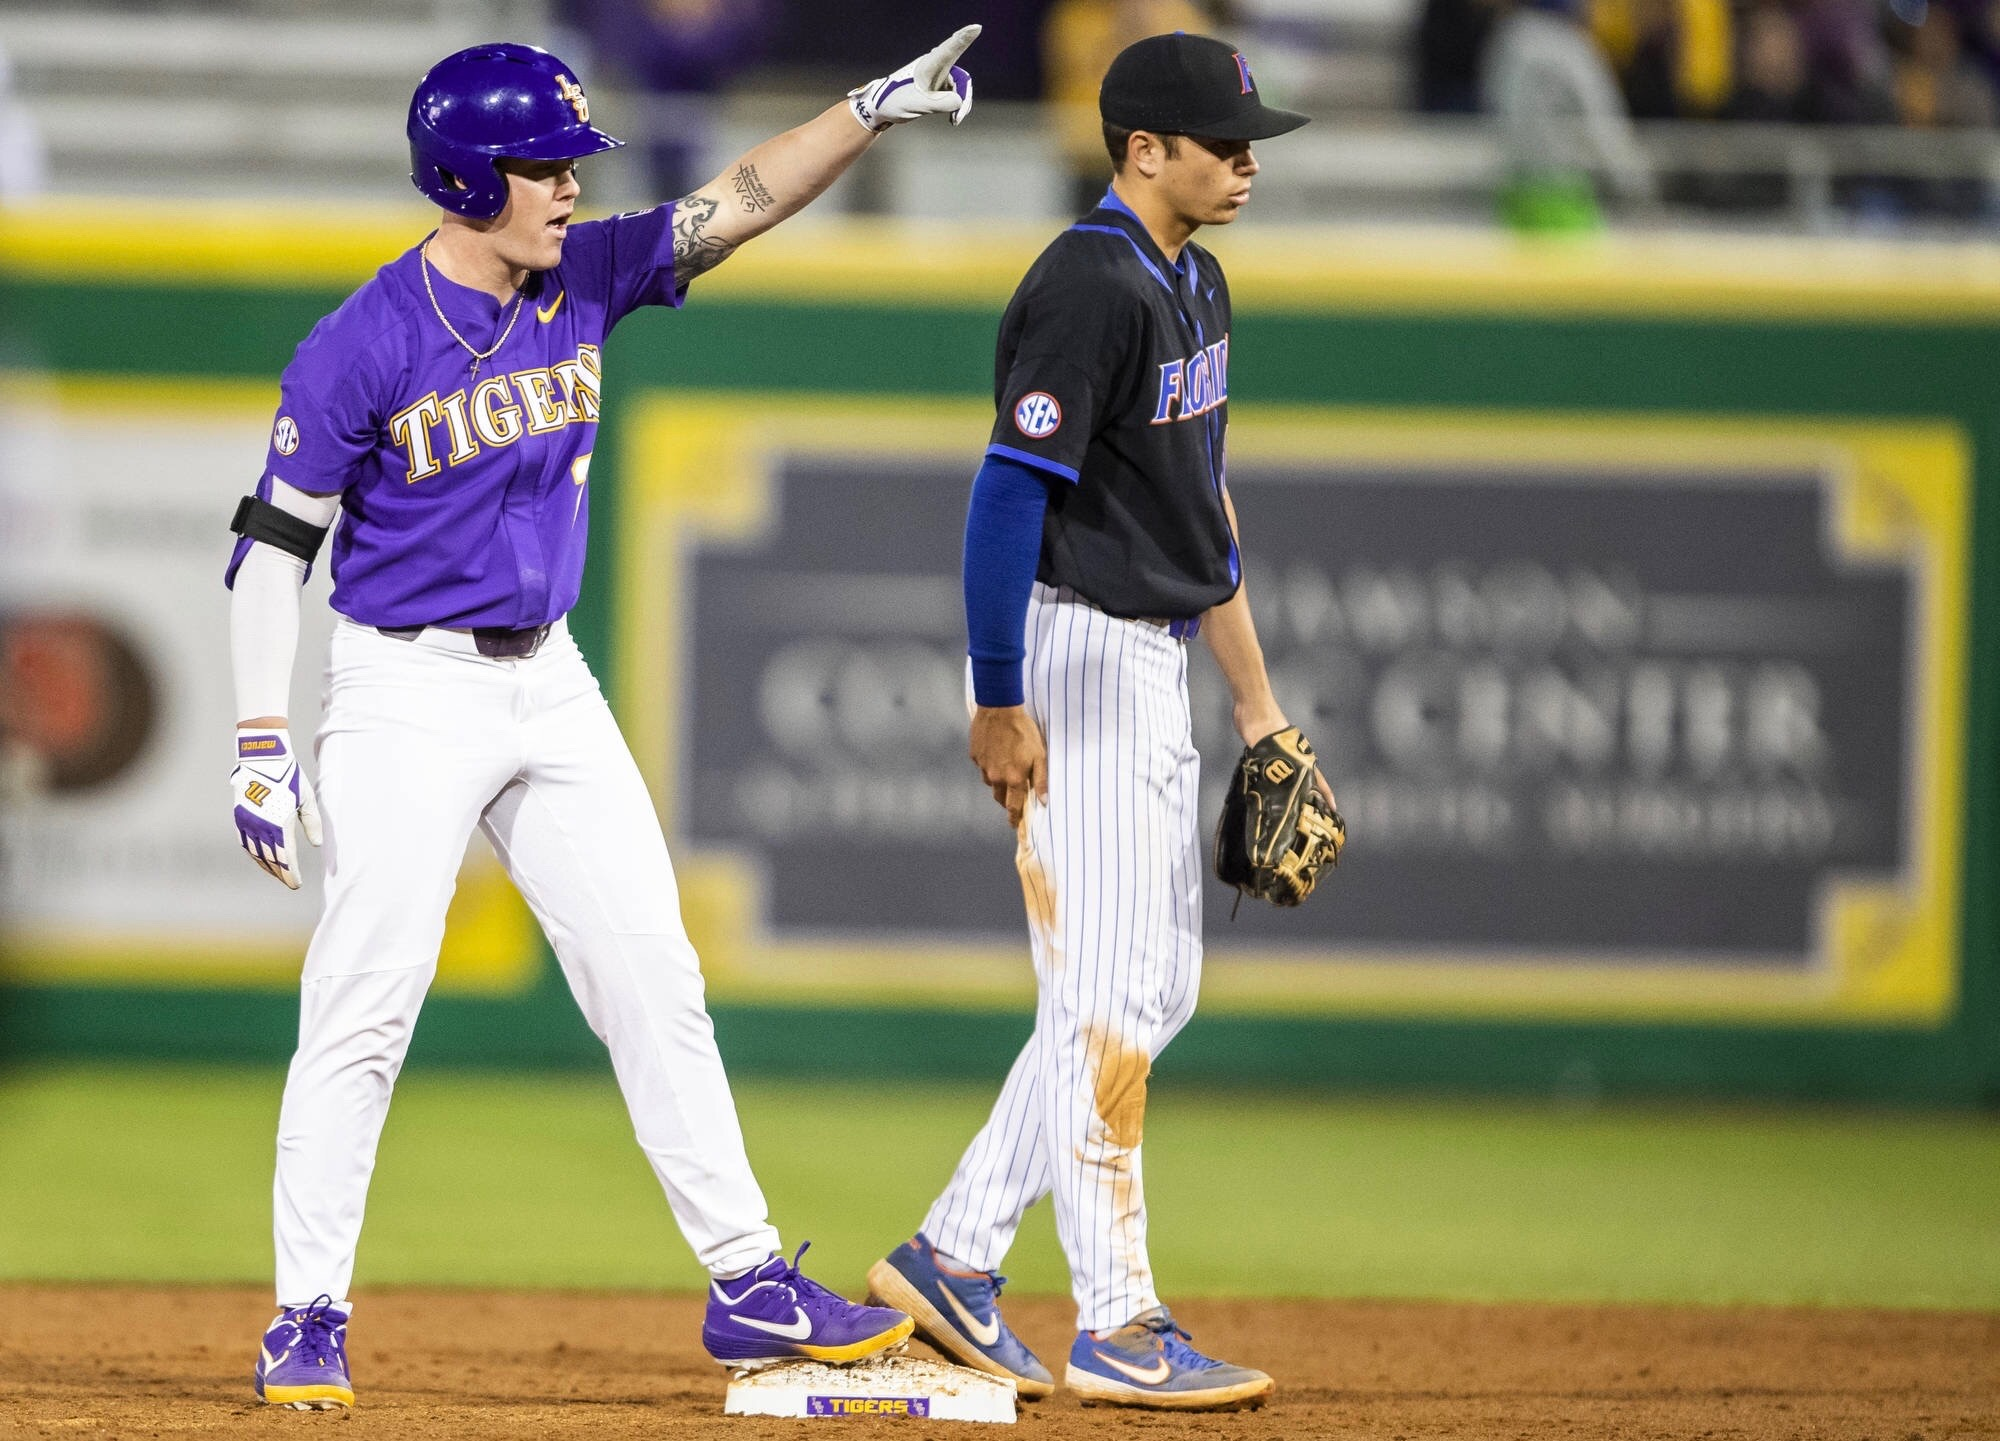 Previewing LSU-Ole Miss at The Box this weekend